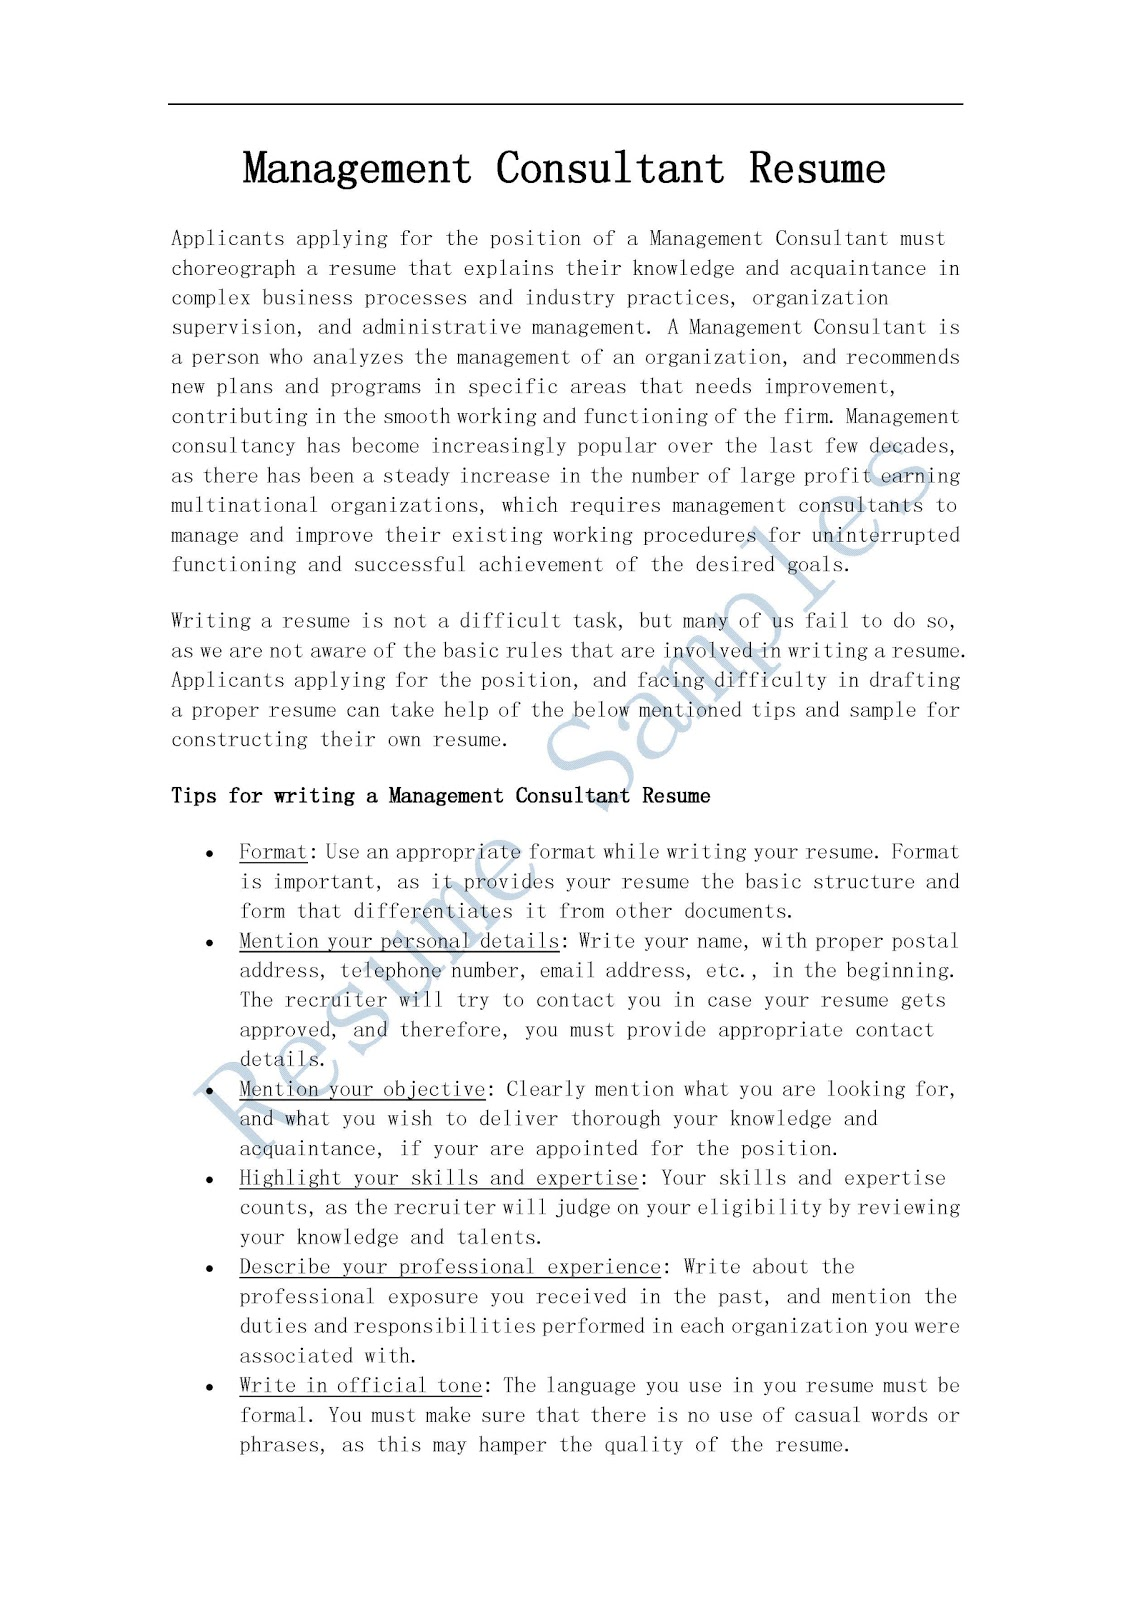 resume samples  management consultant resume